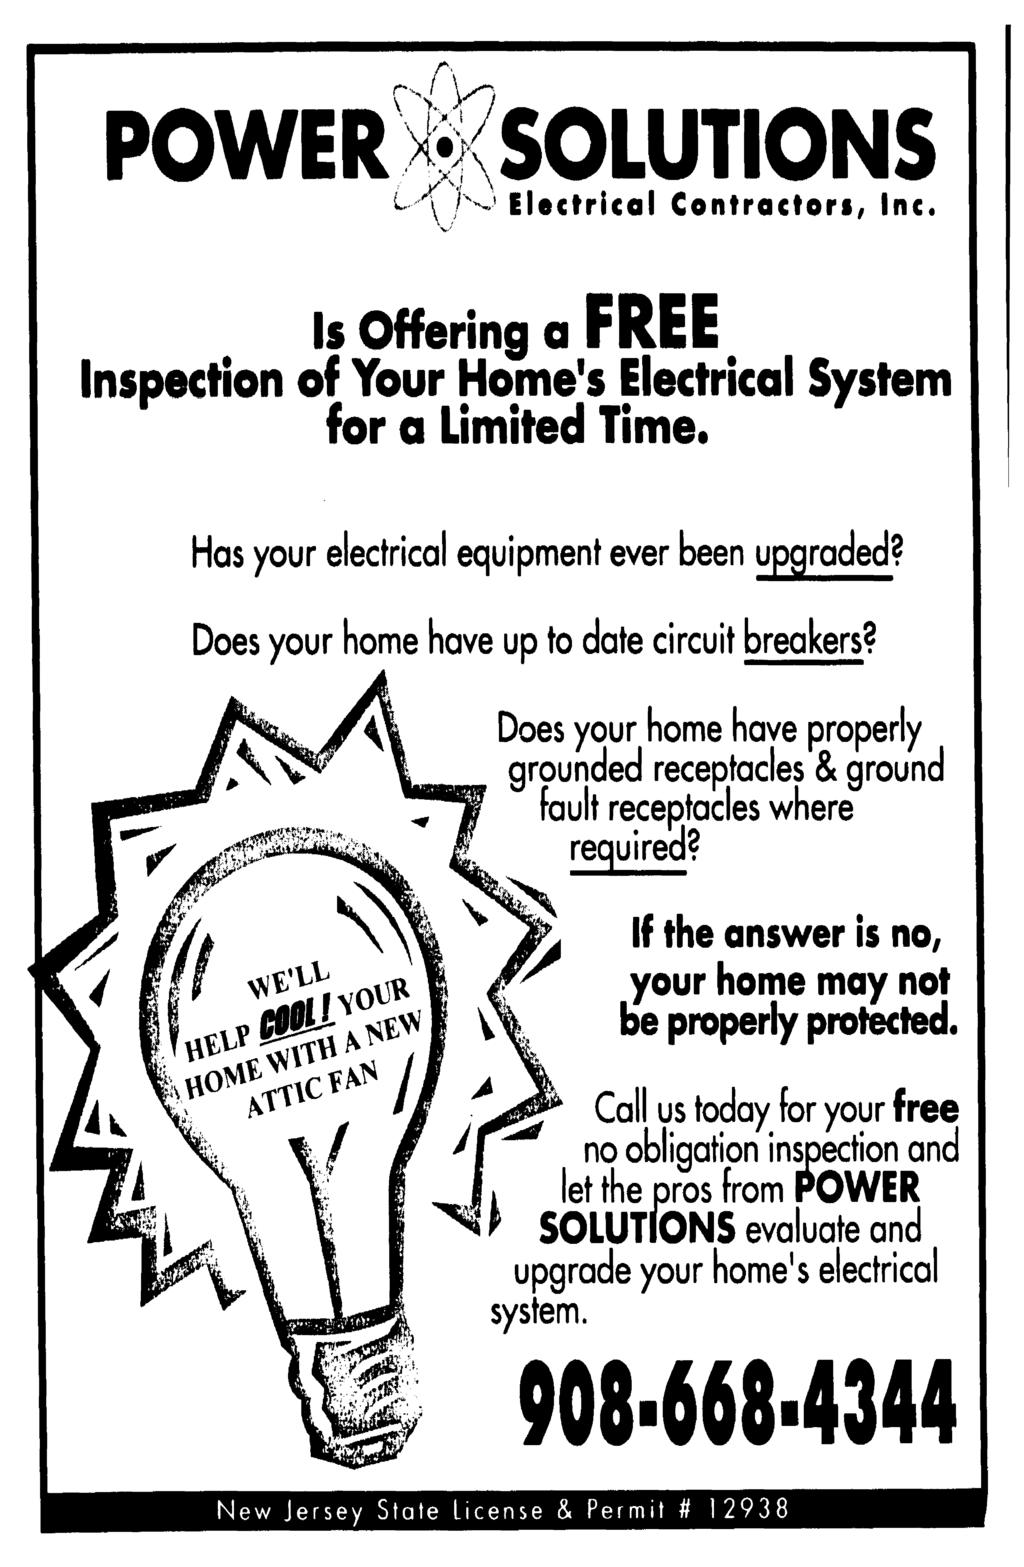 POWER SOLUTONS Electrical Contractors, nc. s Offering a FREE nspection of Your Home's Electrical System for a Limited Time. Has your electrical equipment ever been upgraded?